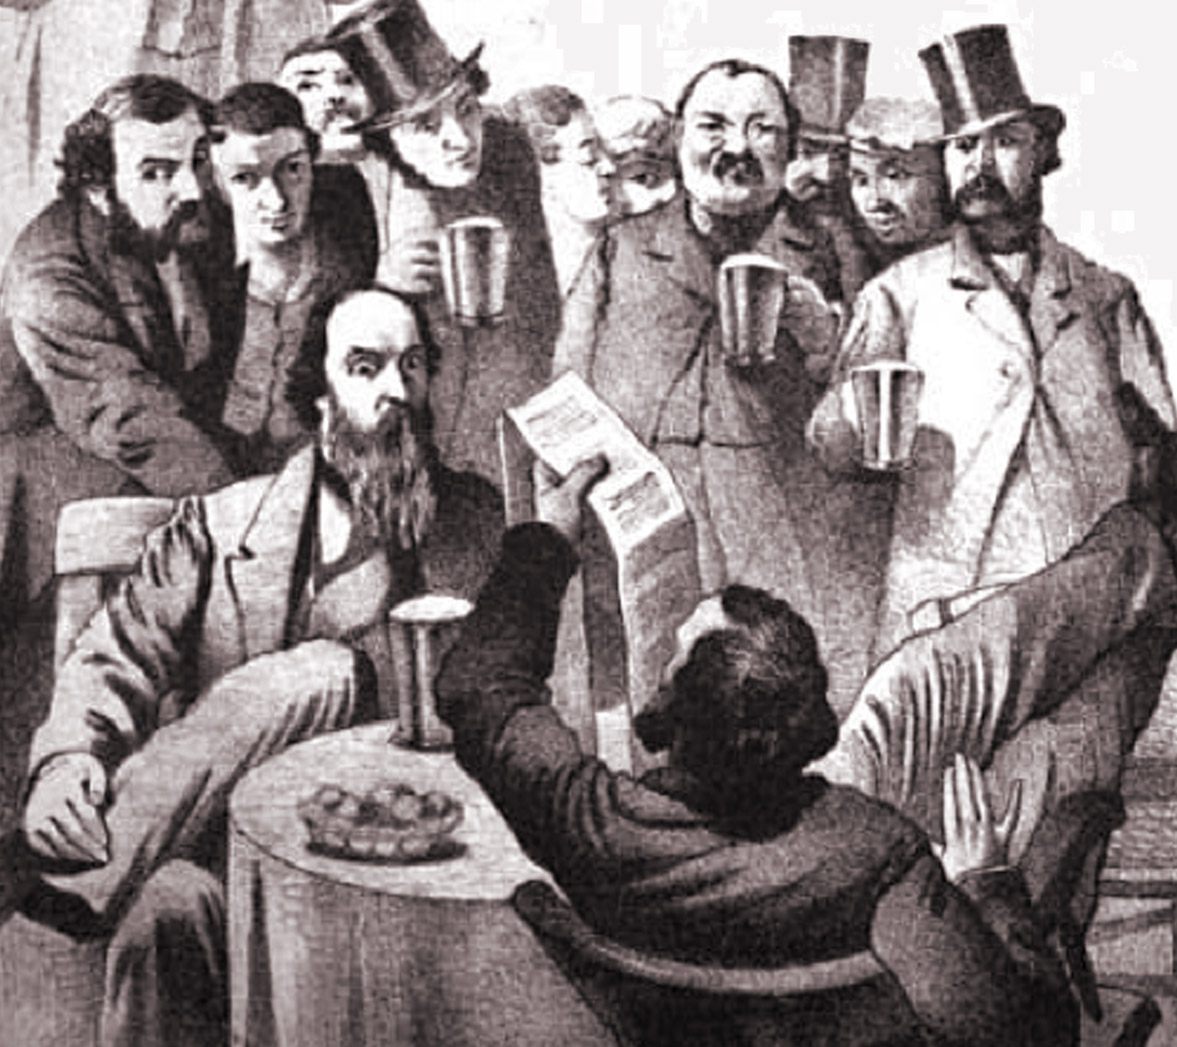 A group of Victorian men drinking in an old pub.